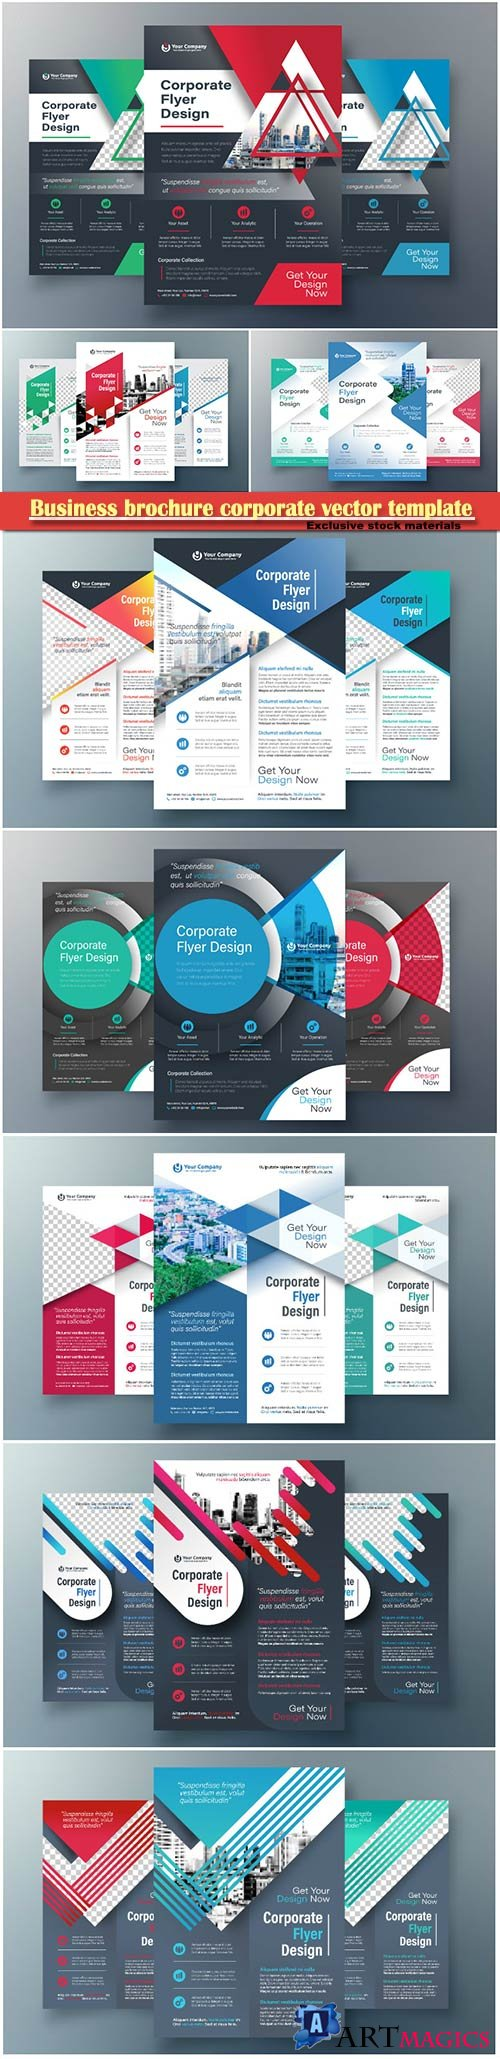 Business brochure corporate vector template, magazine flyer mockup # 7